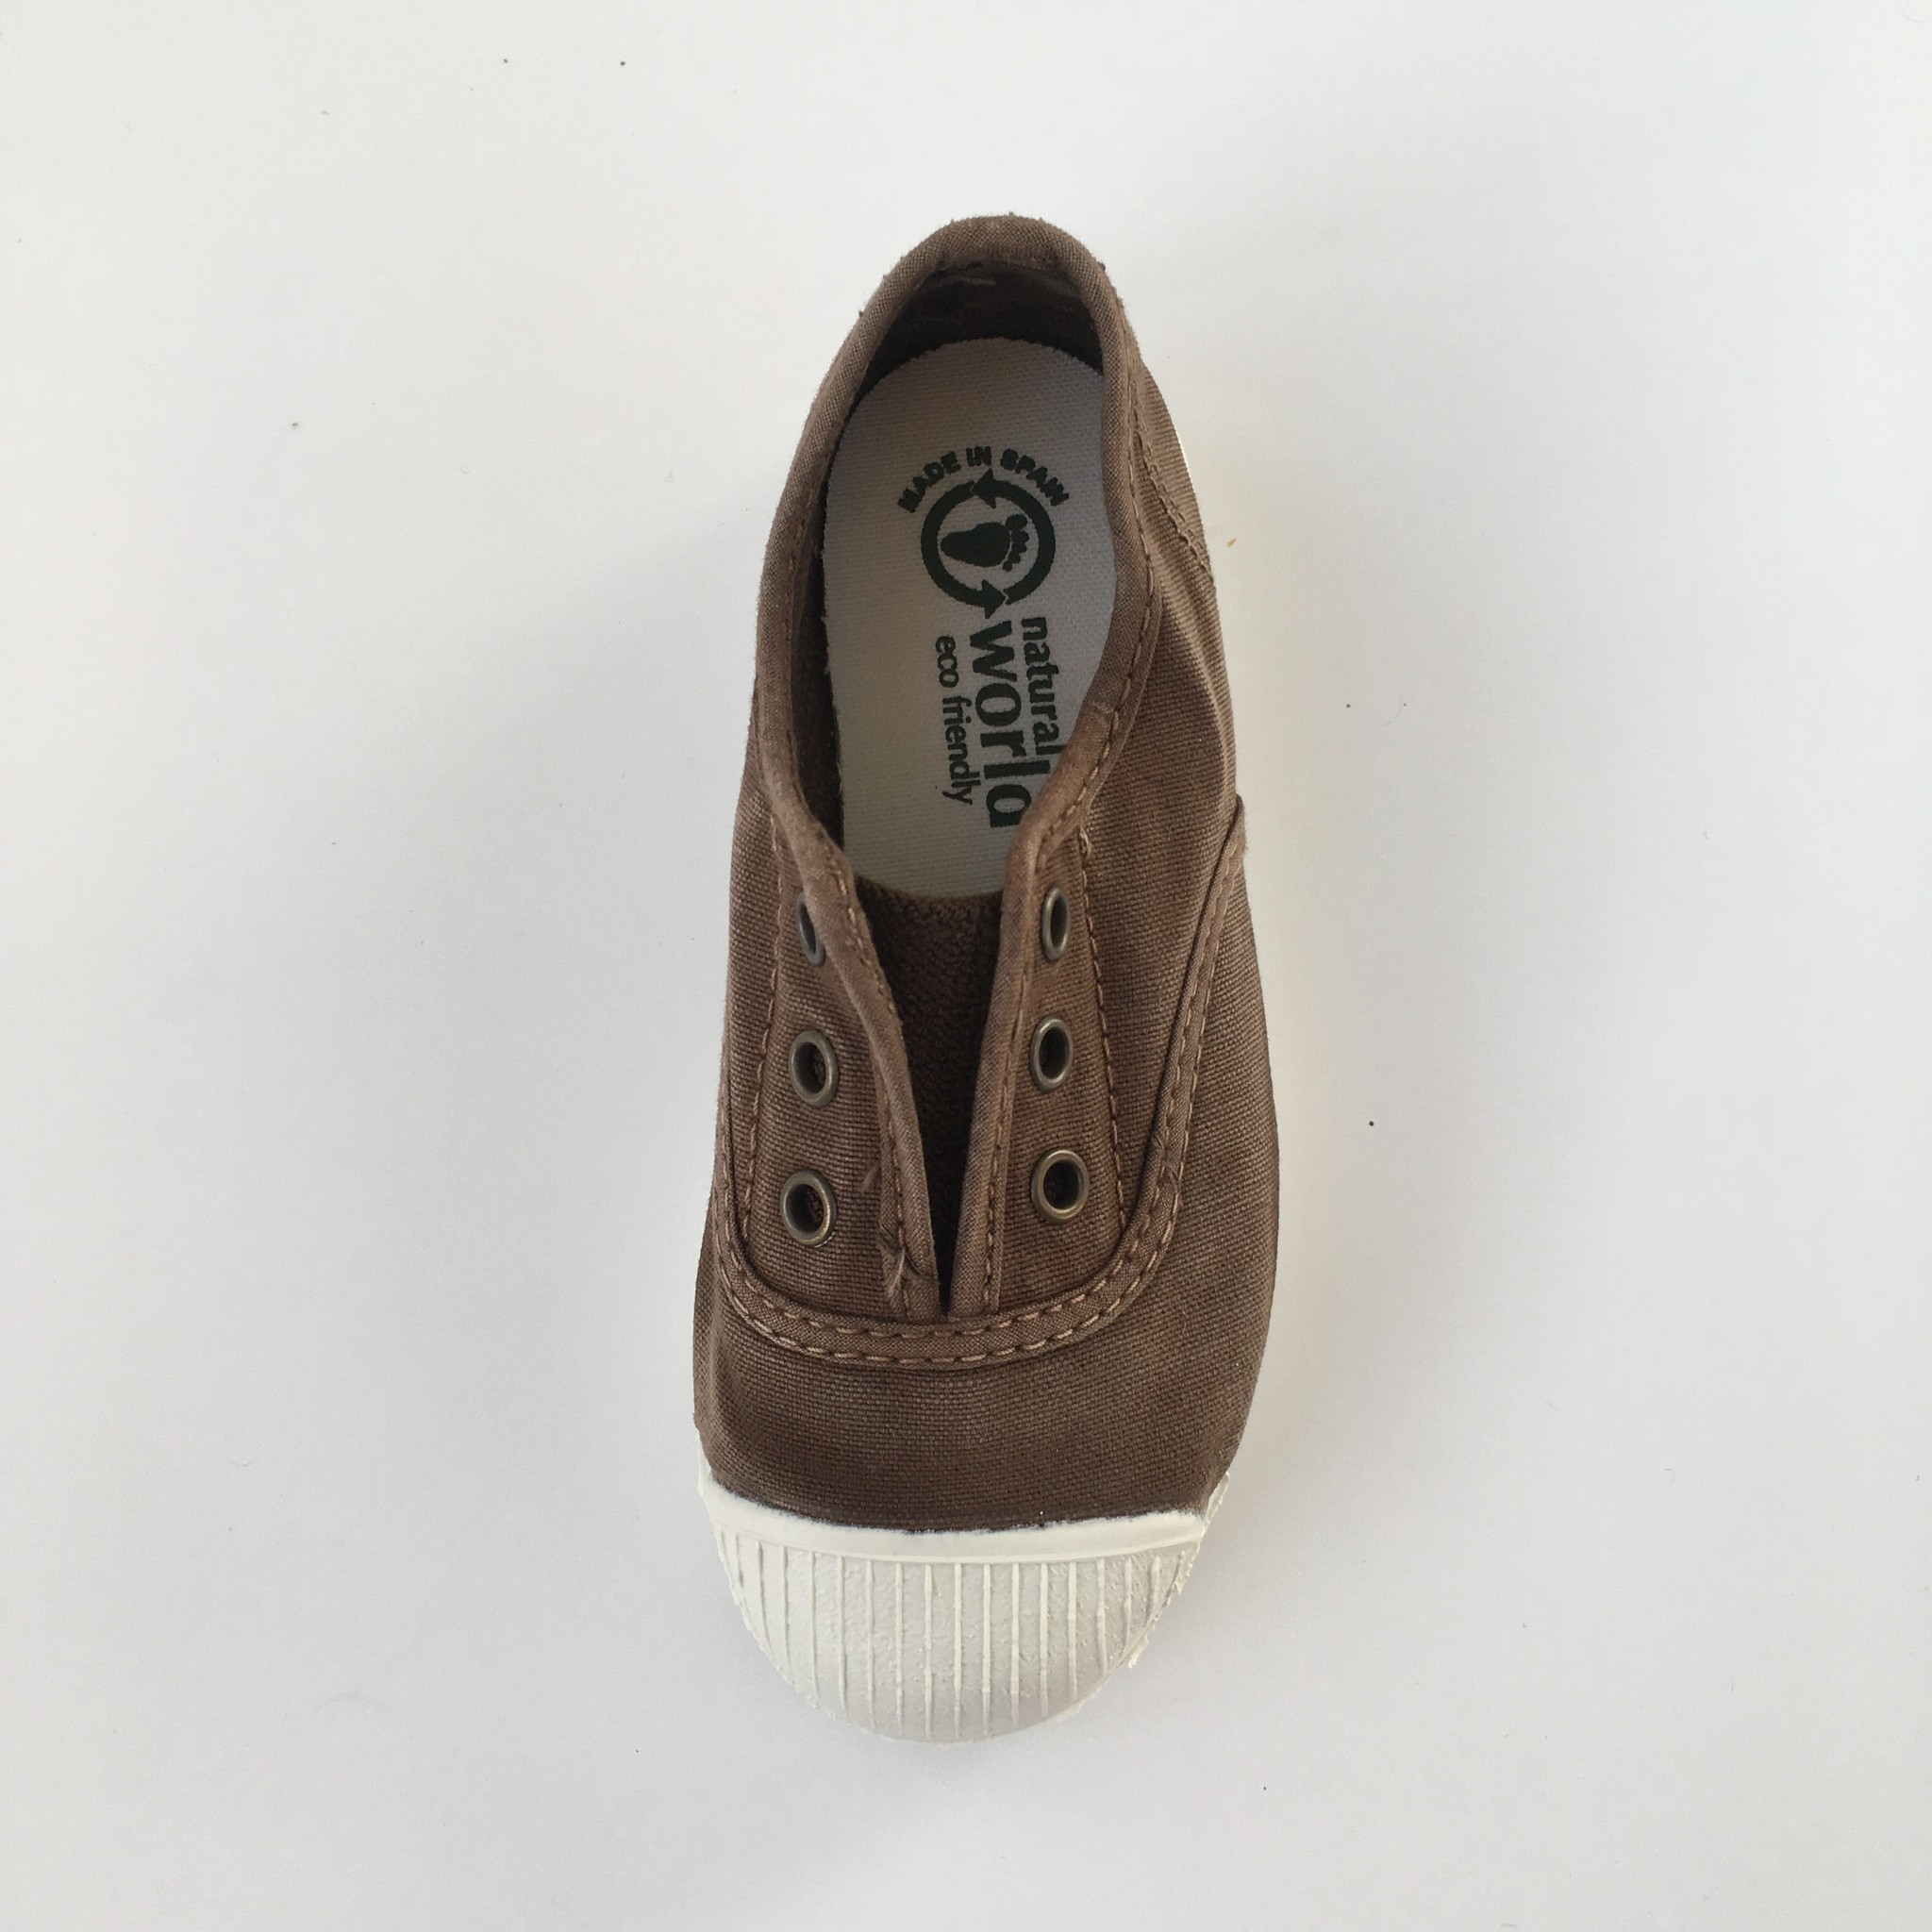 NATURAL WORLD eco kids sneakers OLD LAVANDA - organic cotton - stone washed brown - 21 to 34